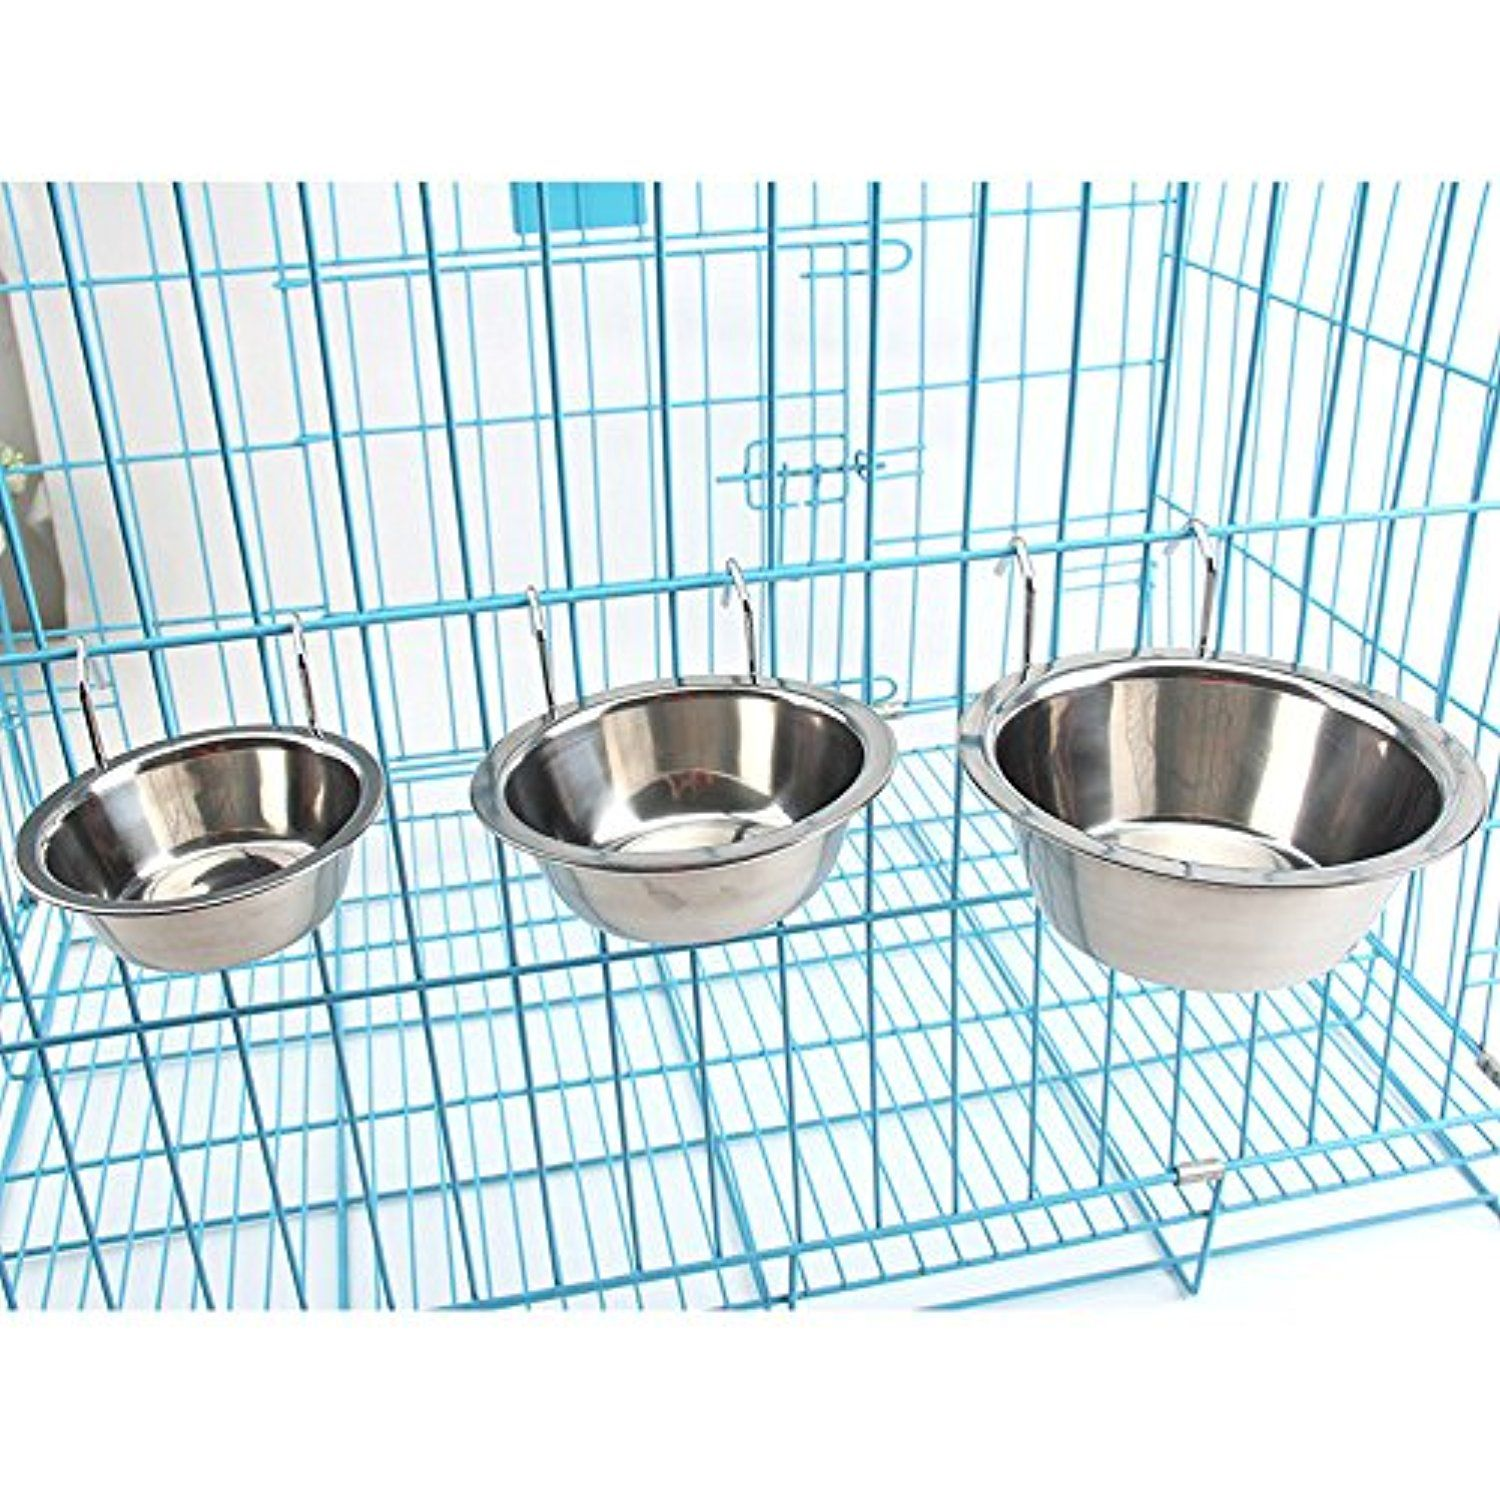 Mlcini Stainless Steel Hanging Pet Bowl Removable Dish Feeder For